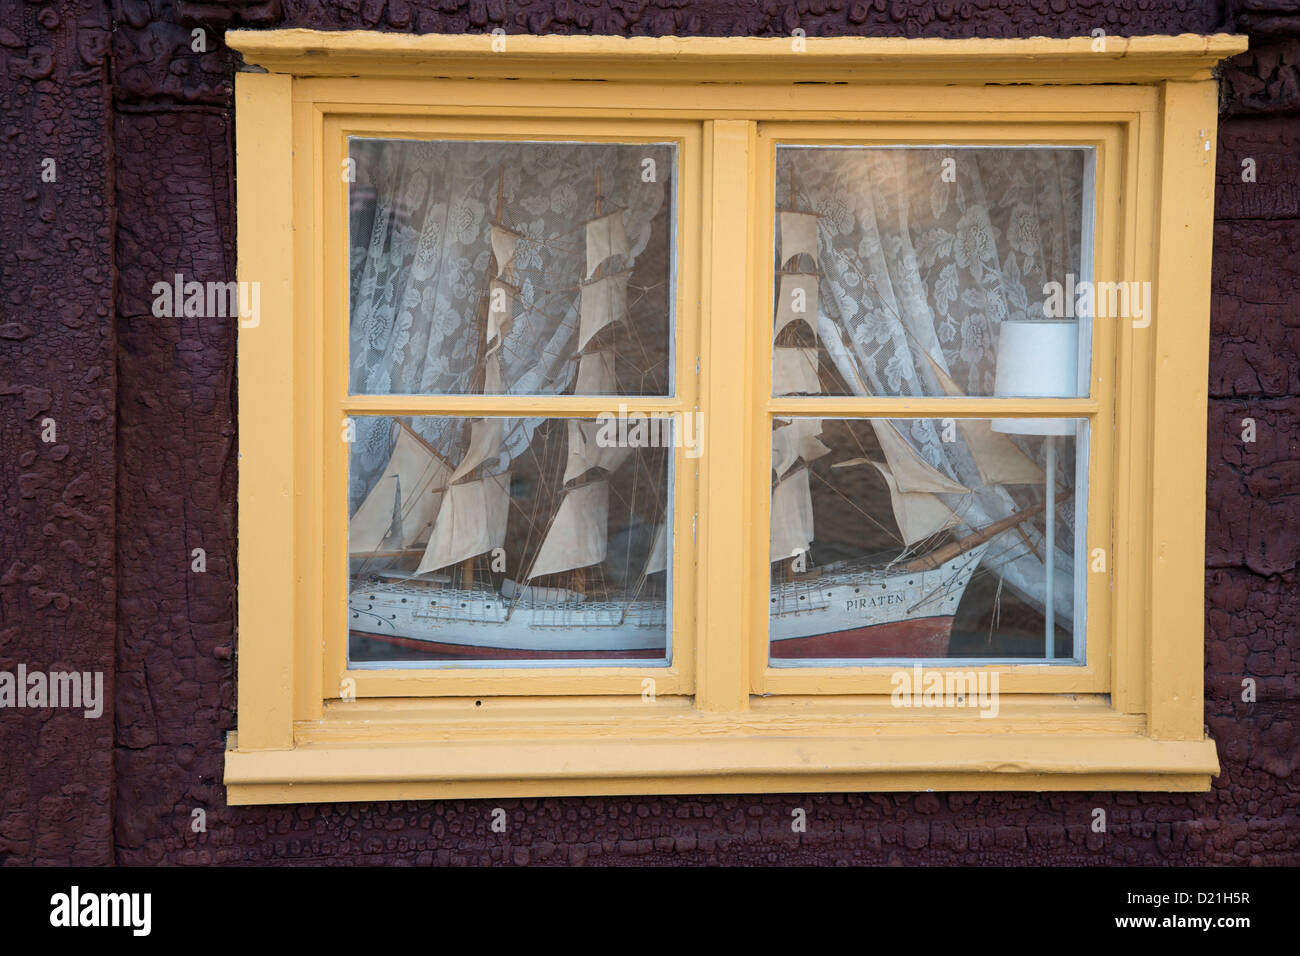 Model of sailing ship in a window, Visby, Gotland, Sweden, Europe - Stock Image